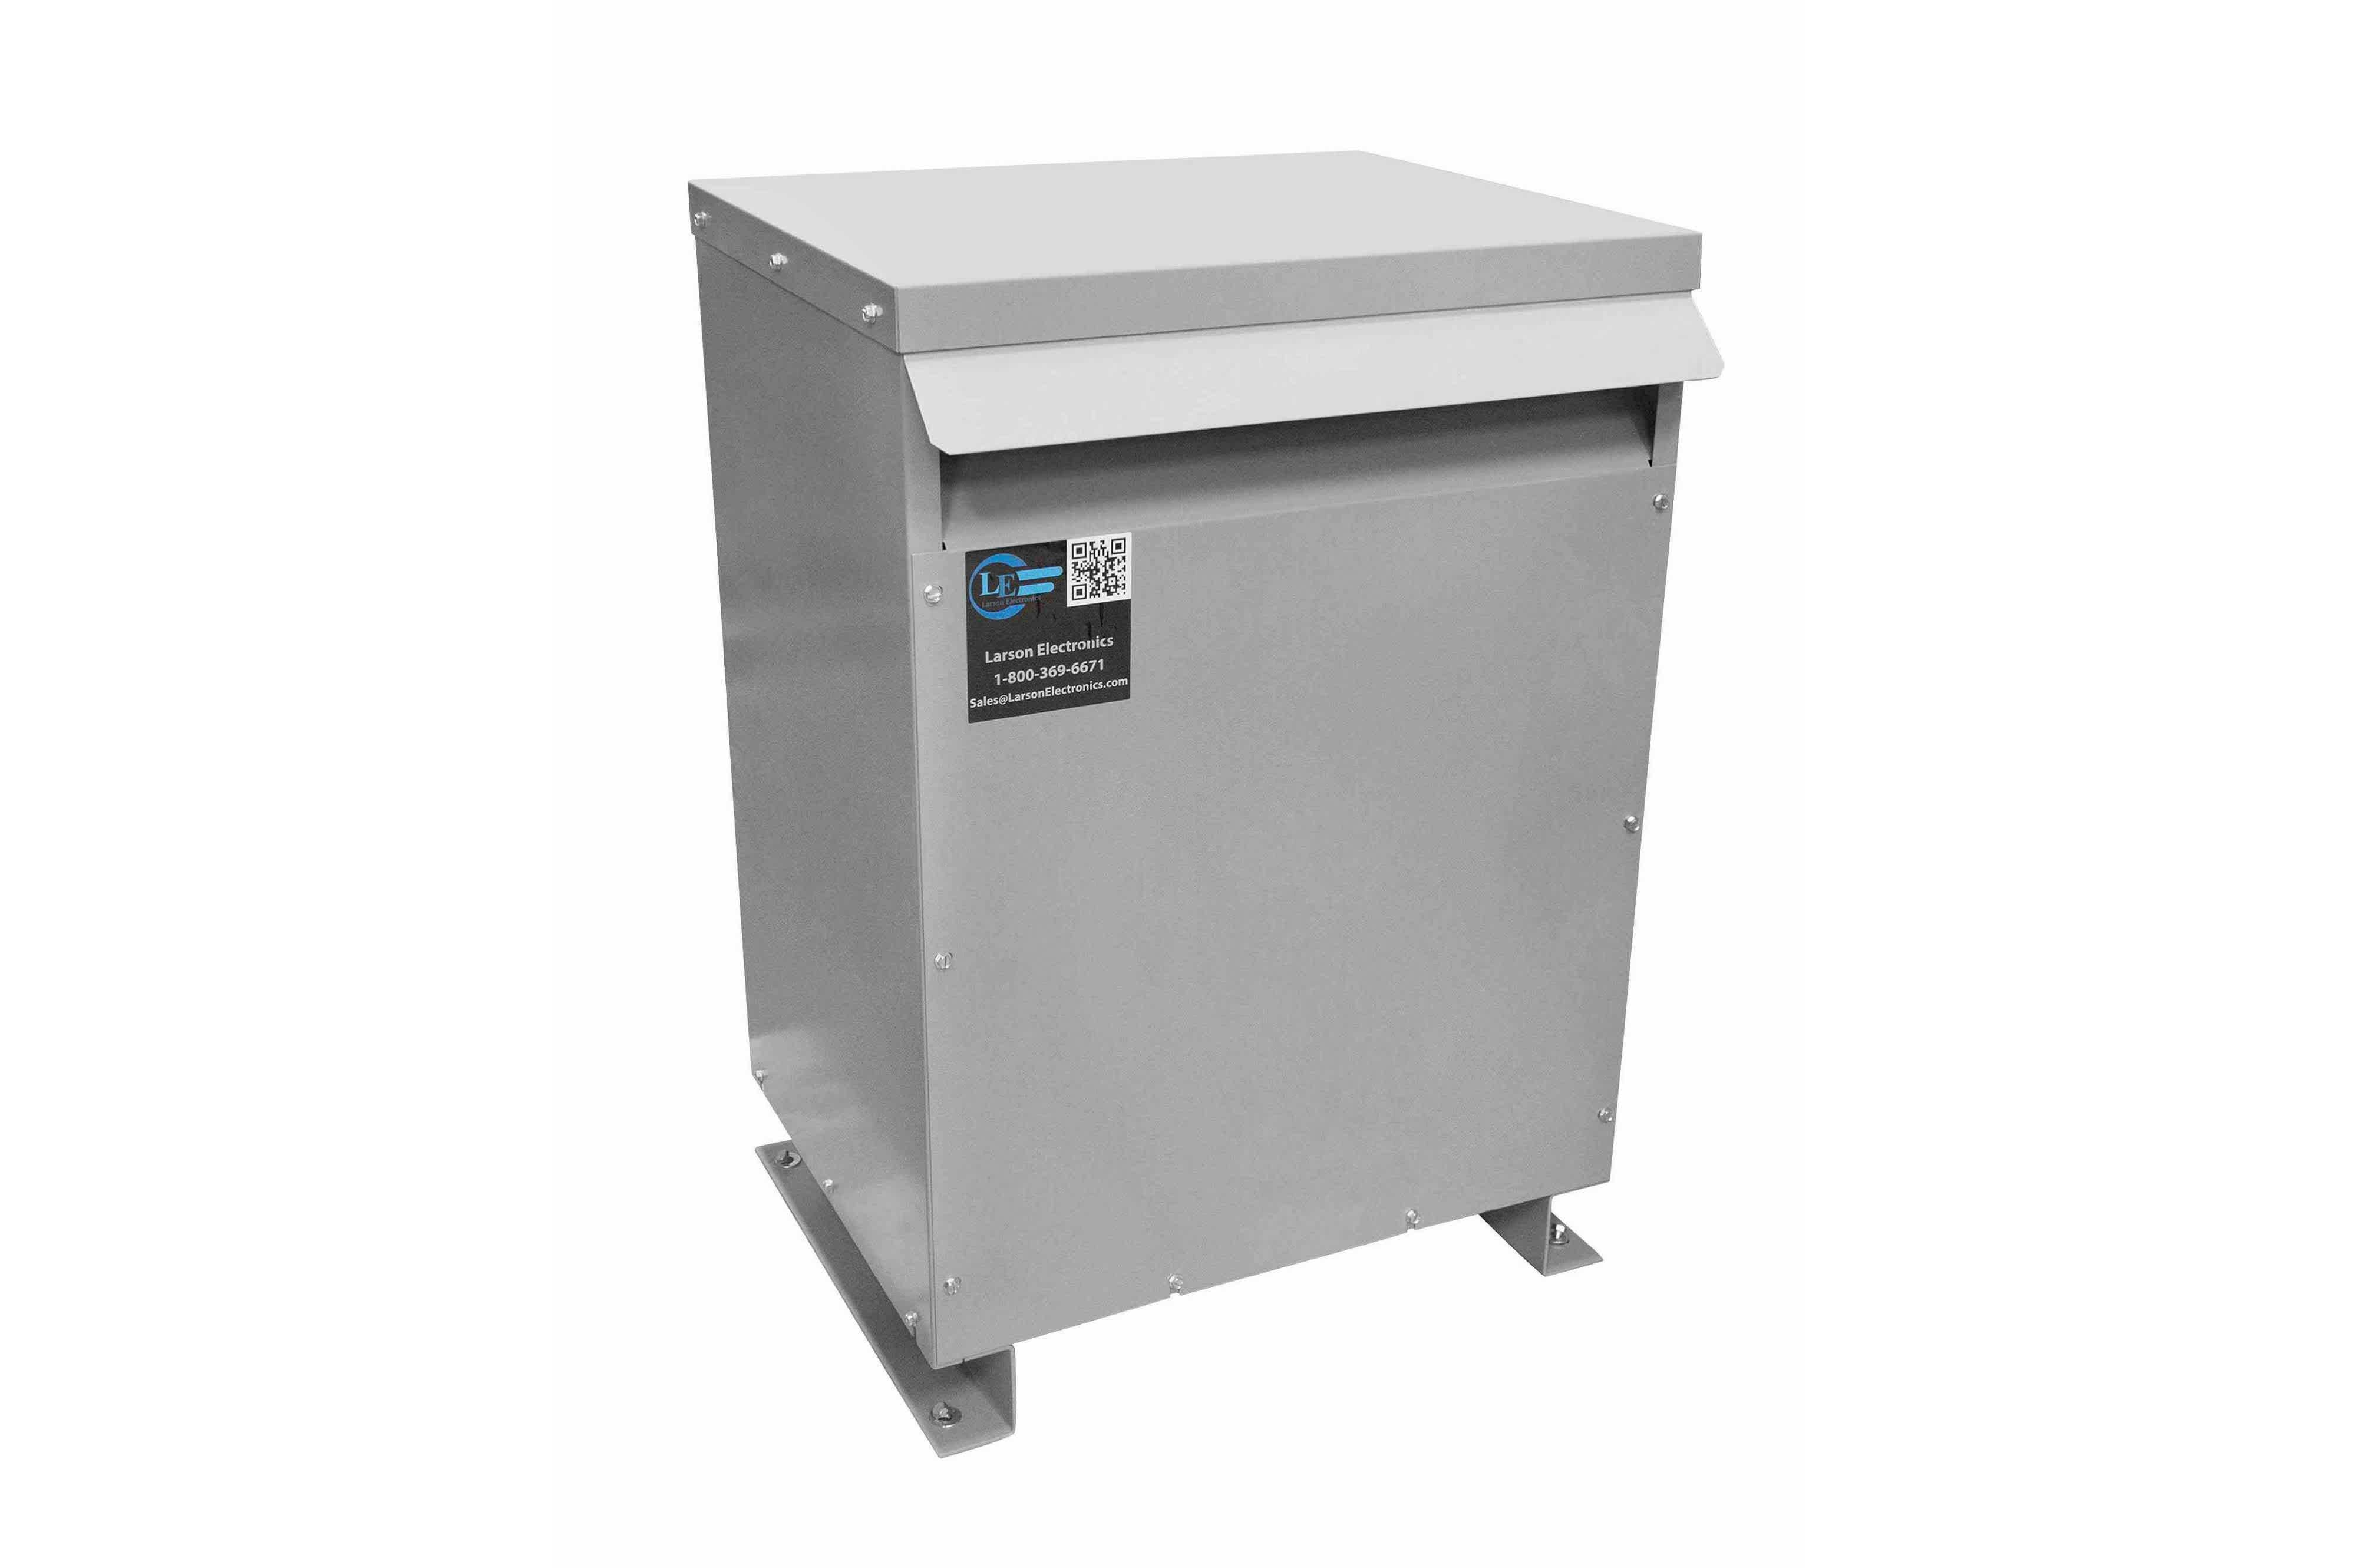 9 kVA 3PH DOE Transformer, 208V Delta Primary, 415Y/240 Wye-N Secondary, N3R, Ventilated, 60 Hz